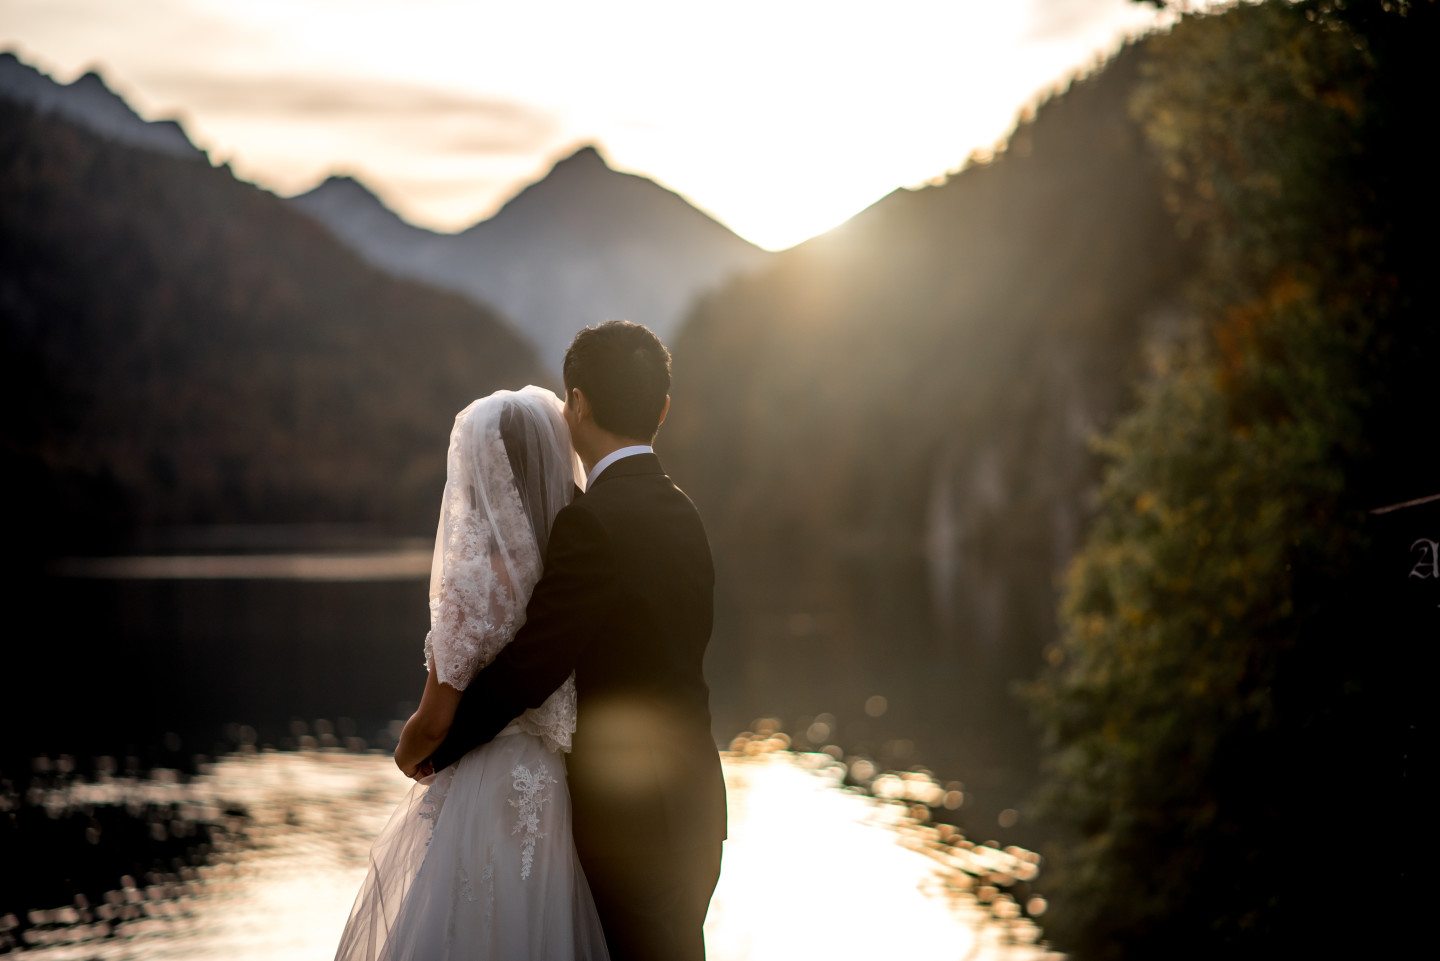 Prewedding Photo at Eibsee Lake